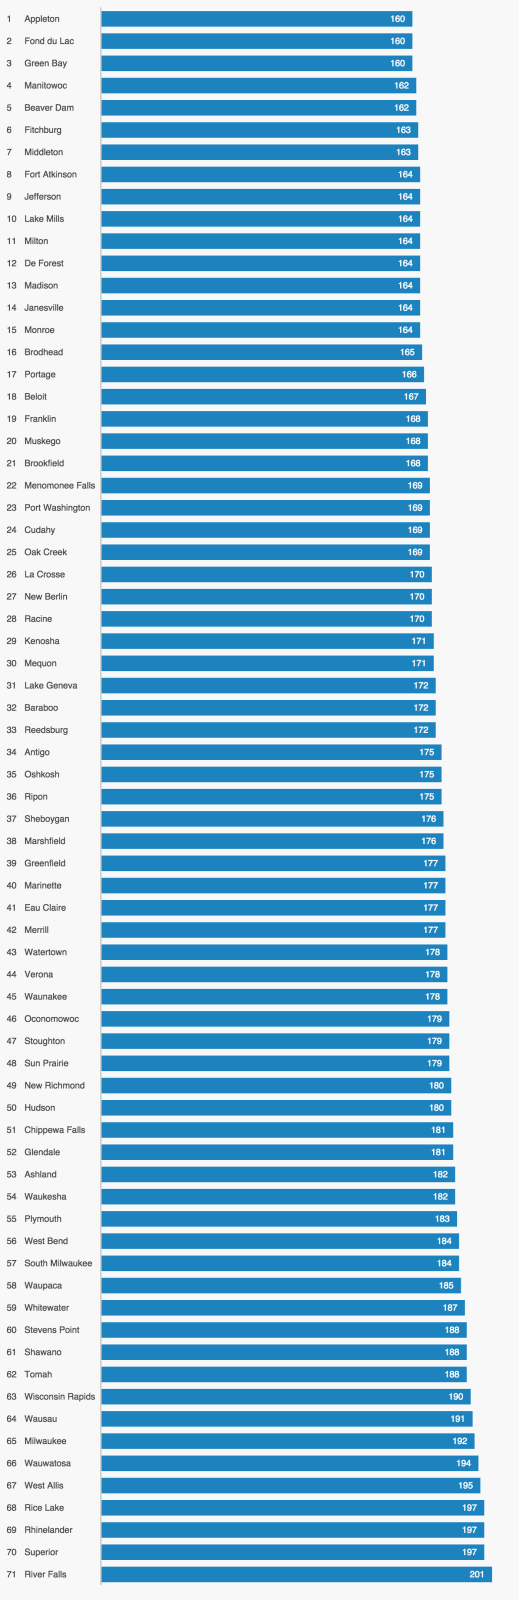 This graph ranks the cities and towns in our Wisconsin analysis from the least expensive to the most.